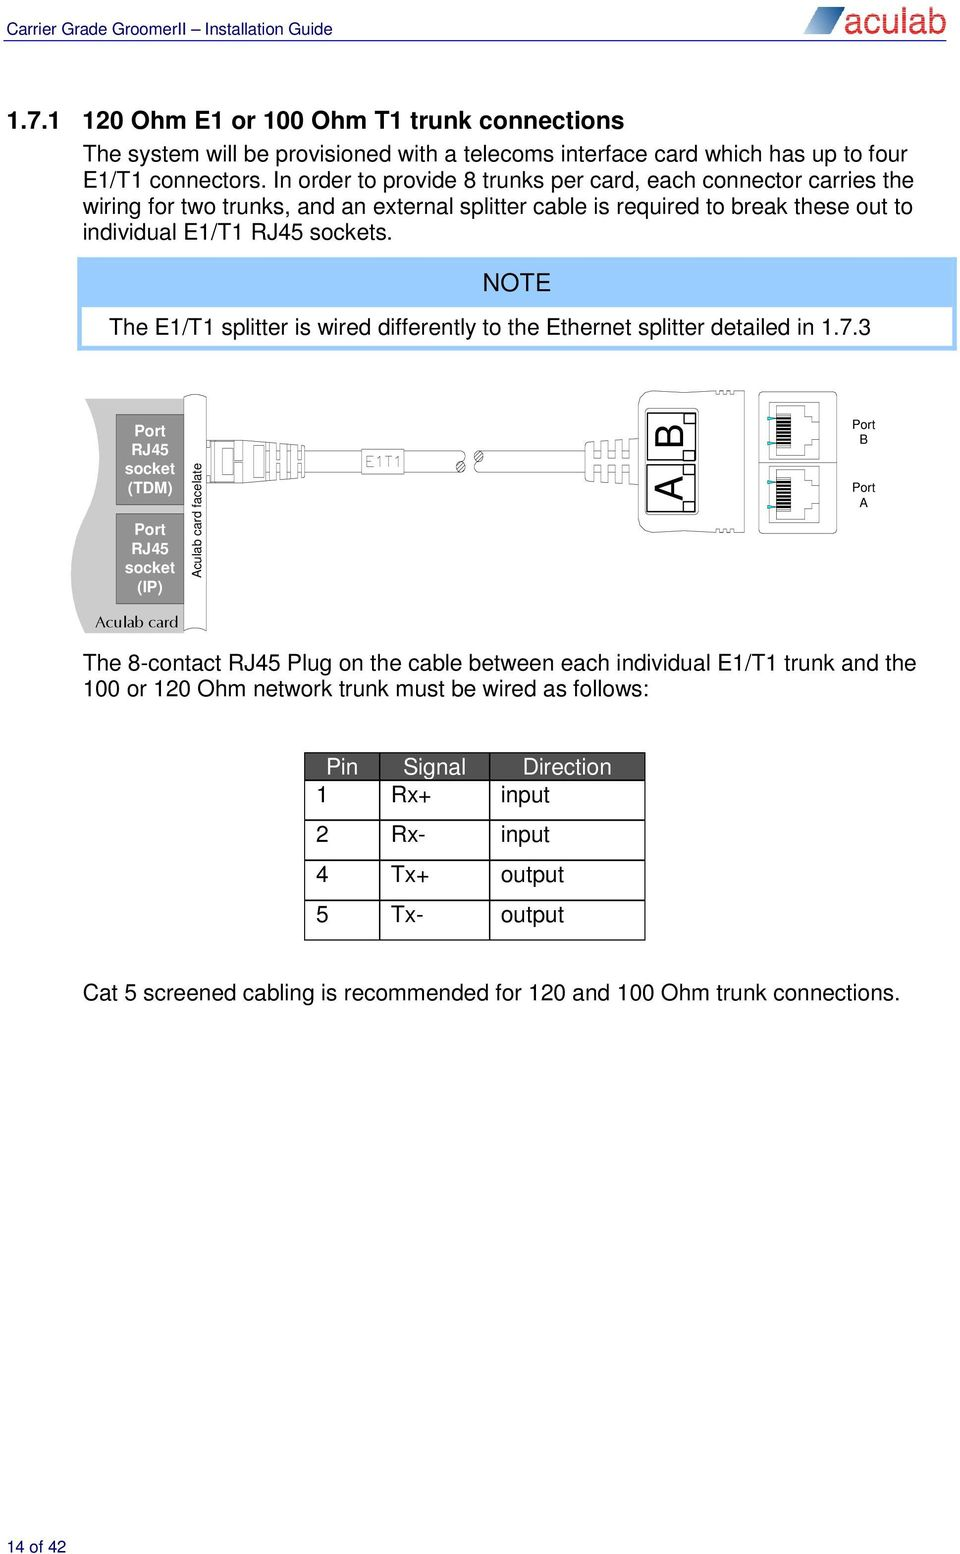 Aculab Groomerii 1u Carrier Grade Chassis Installation Guide Wiring Rj45 Socket A Or B Note The E1 T1 Splitter Is Wired Differently To Ethernet Detailed In 17